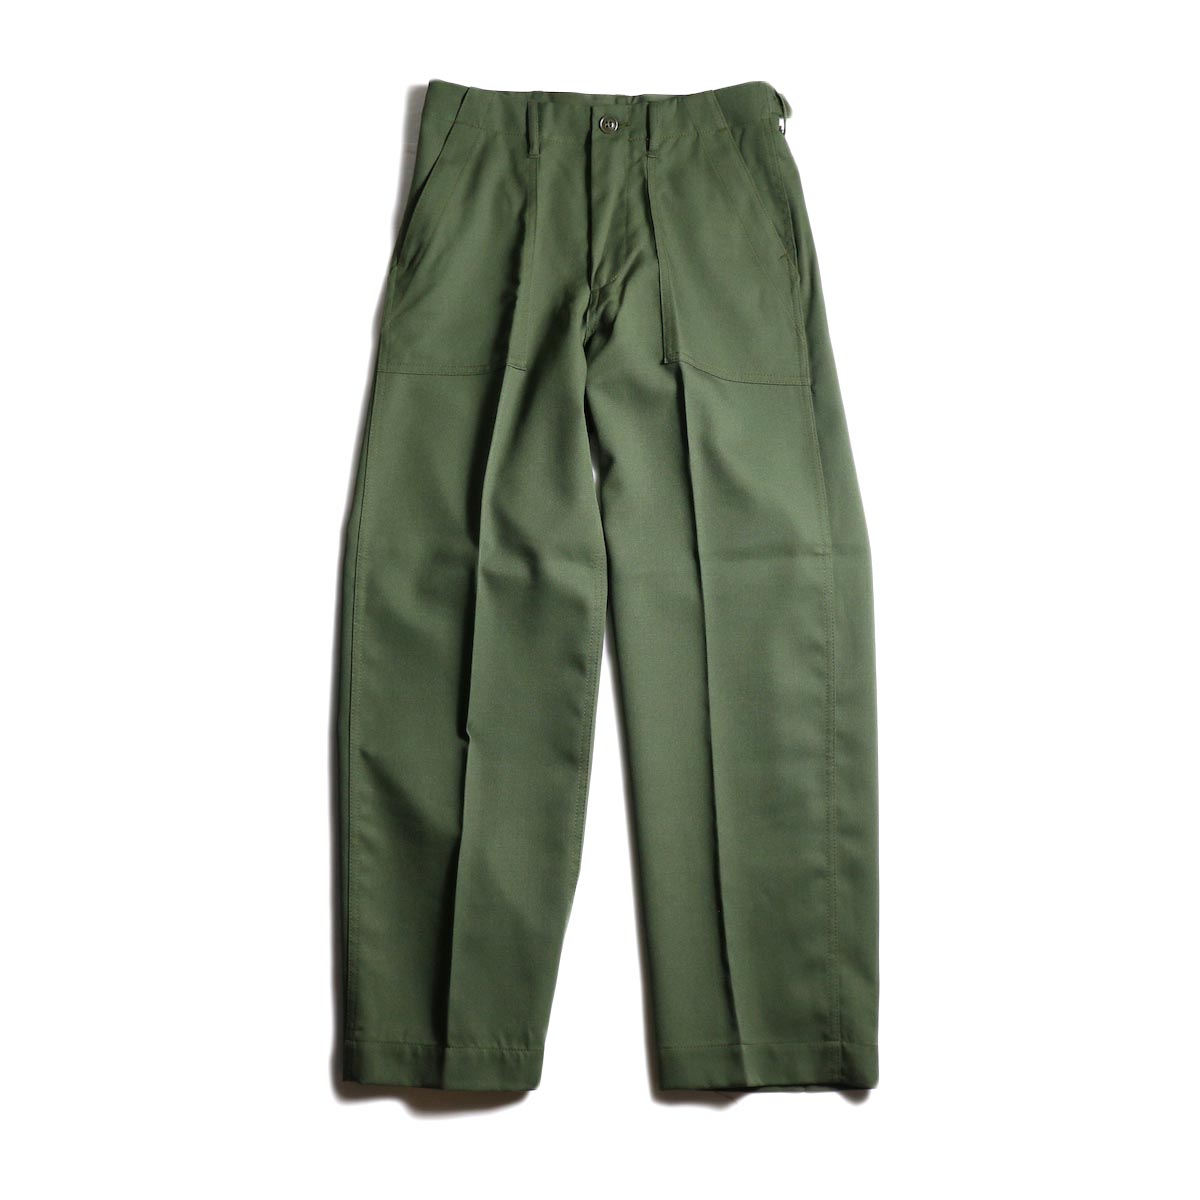 Needles / Fatigue Pant -Wool Twill (Olive)